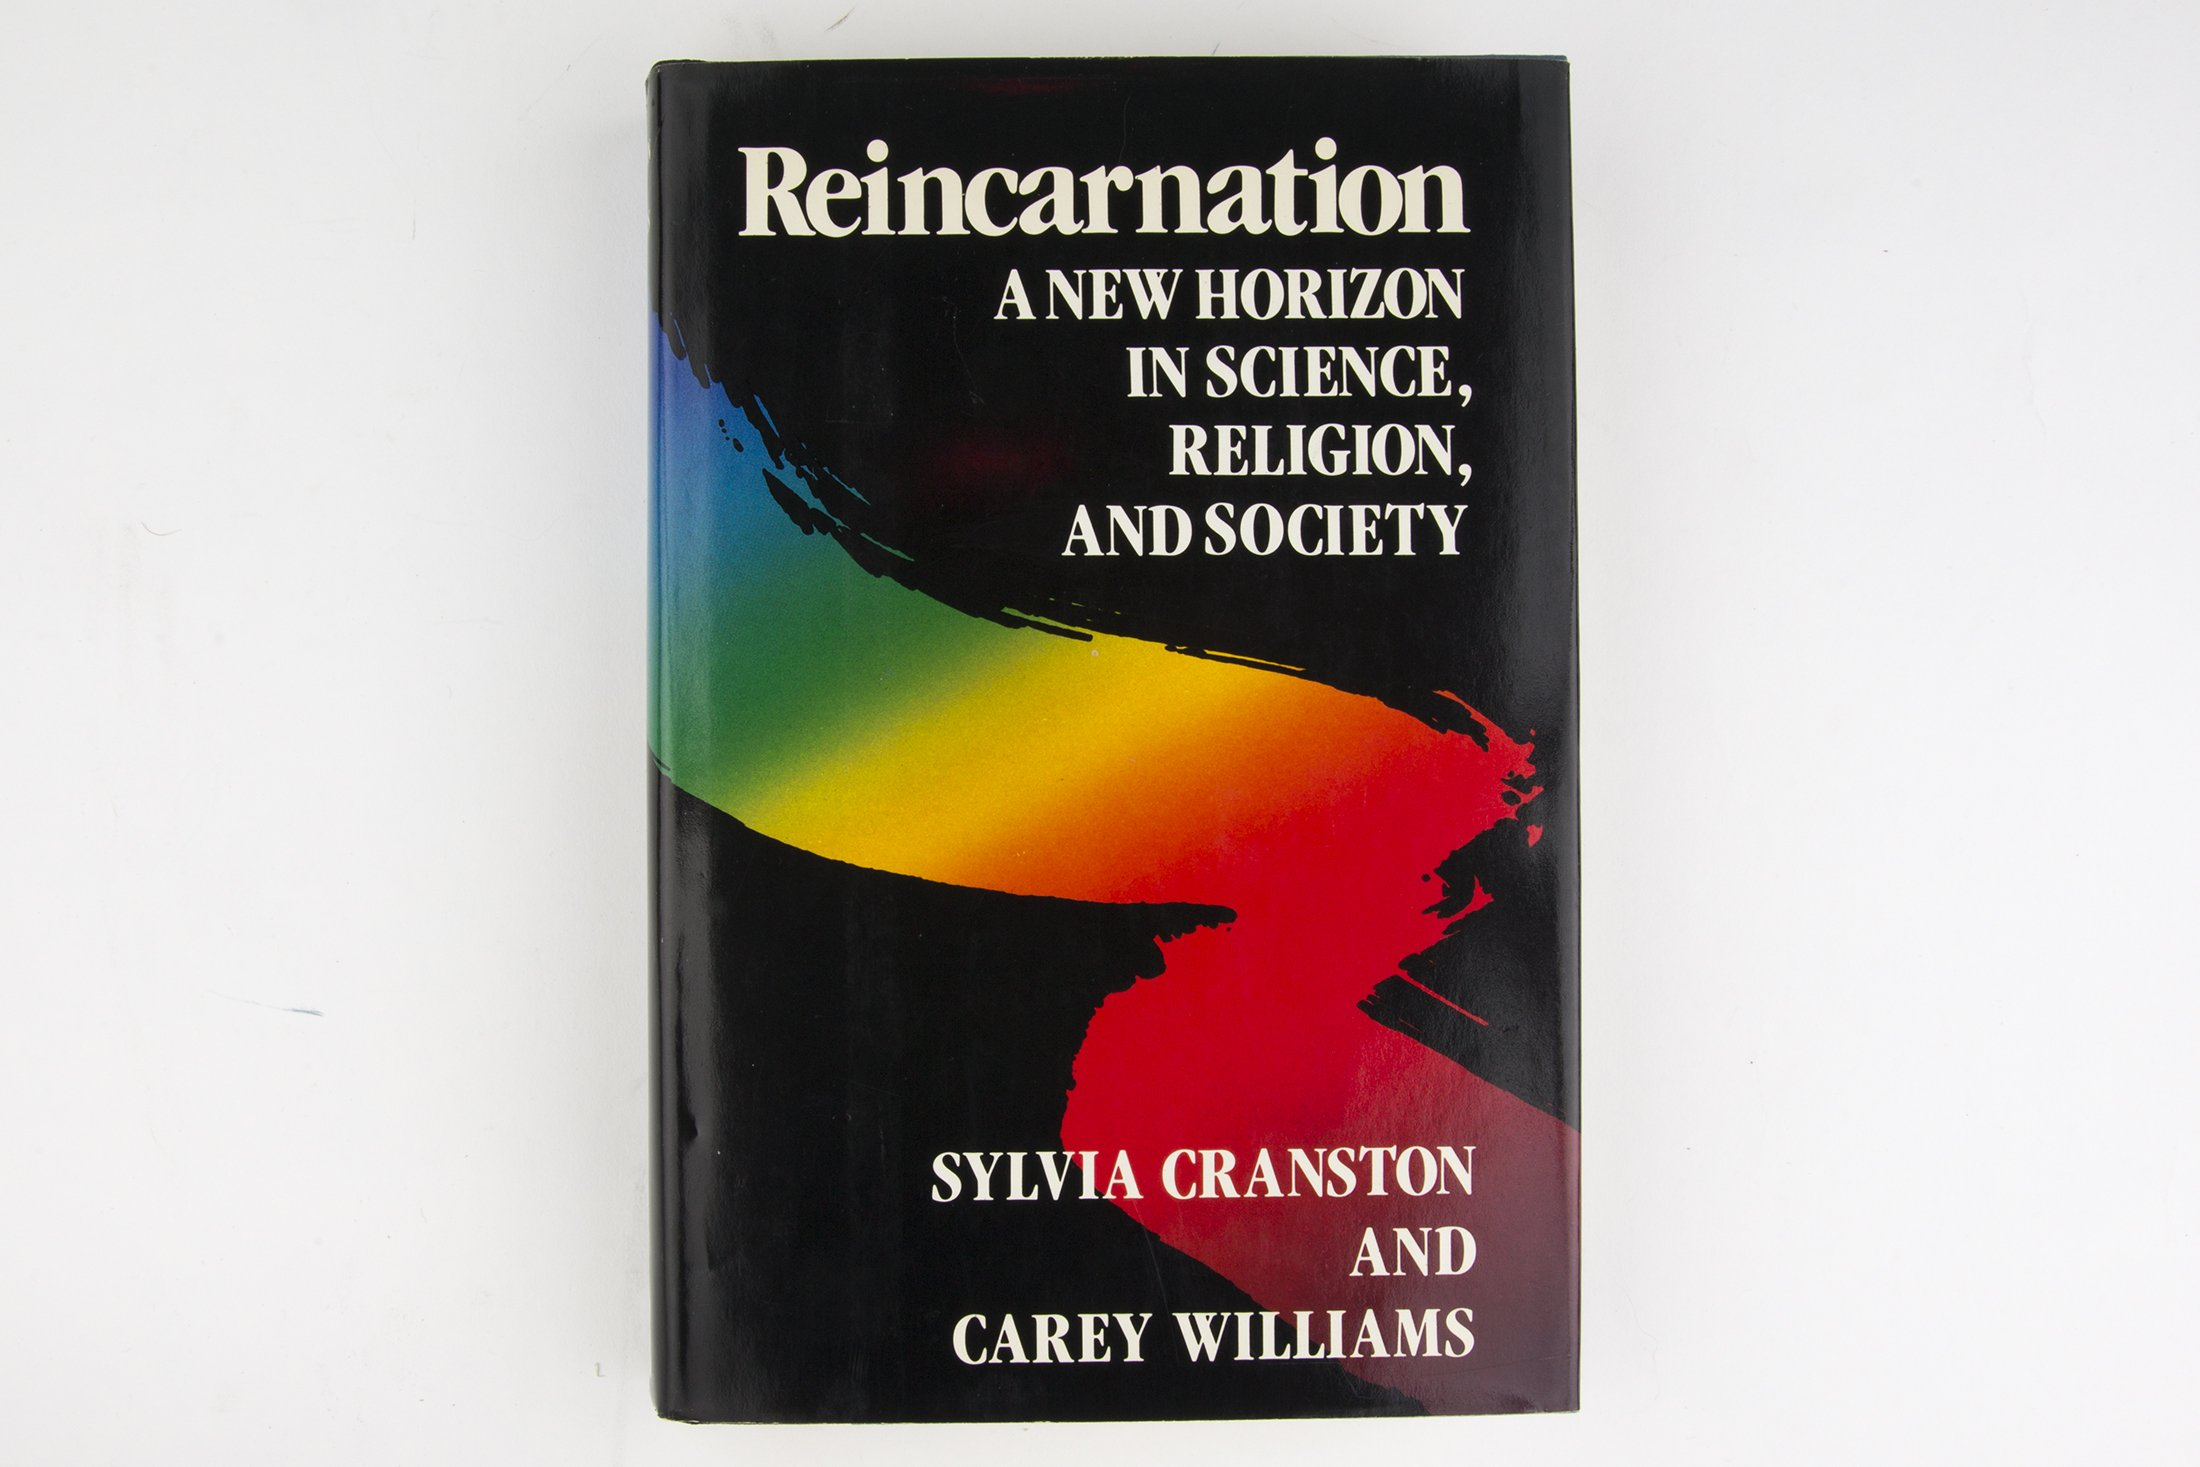 Reincarnation A New Horizon in Science, Religion, and Society Hardcover July 13, 1984